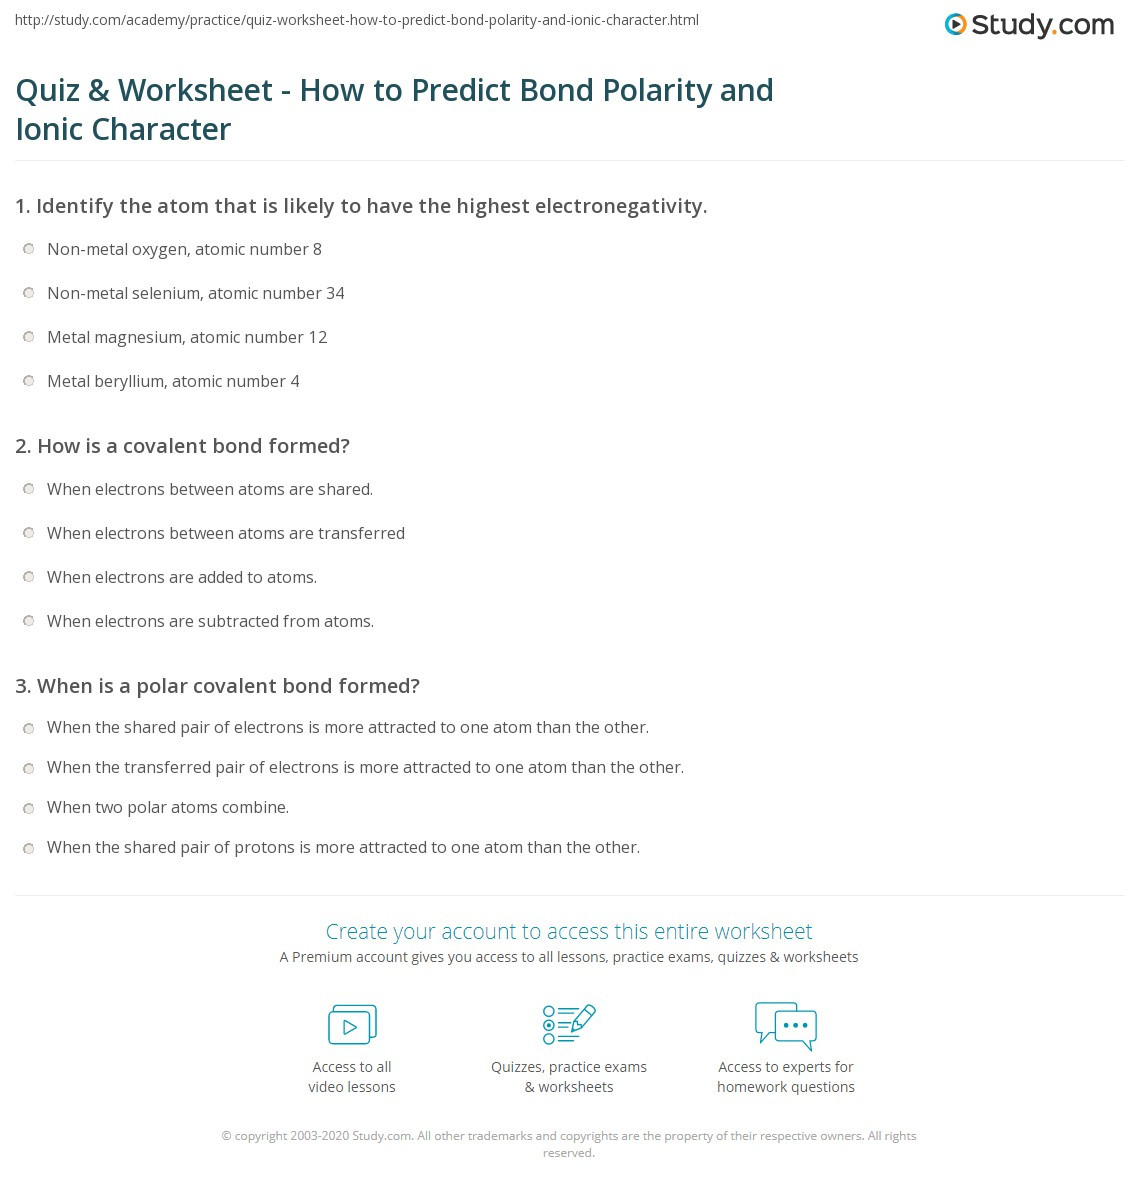 Ionic and Covalent Bonding Worksheet Quiz & Worksheet How to Predict Bond Polarity and Ionic